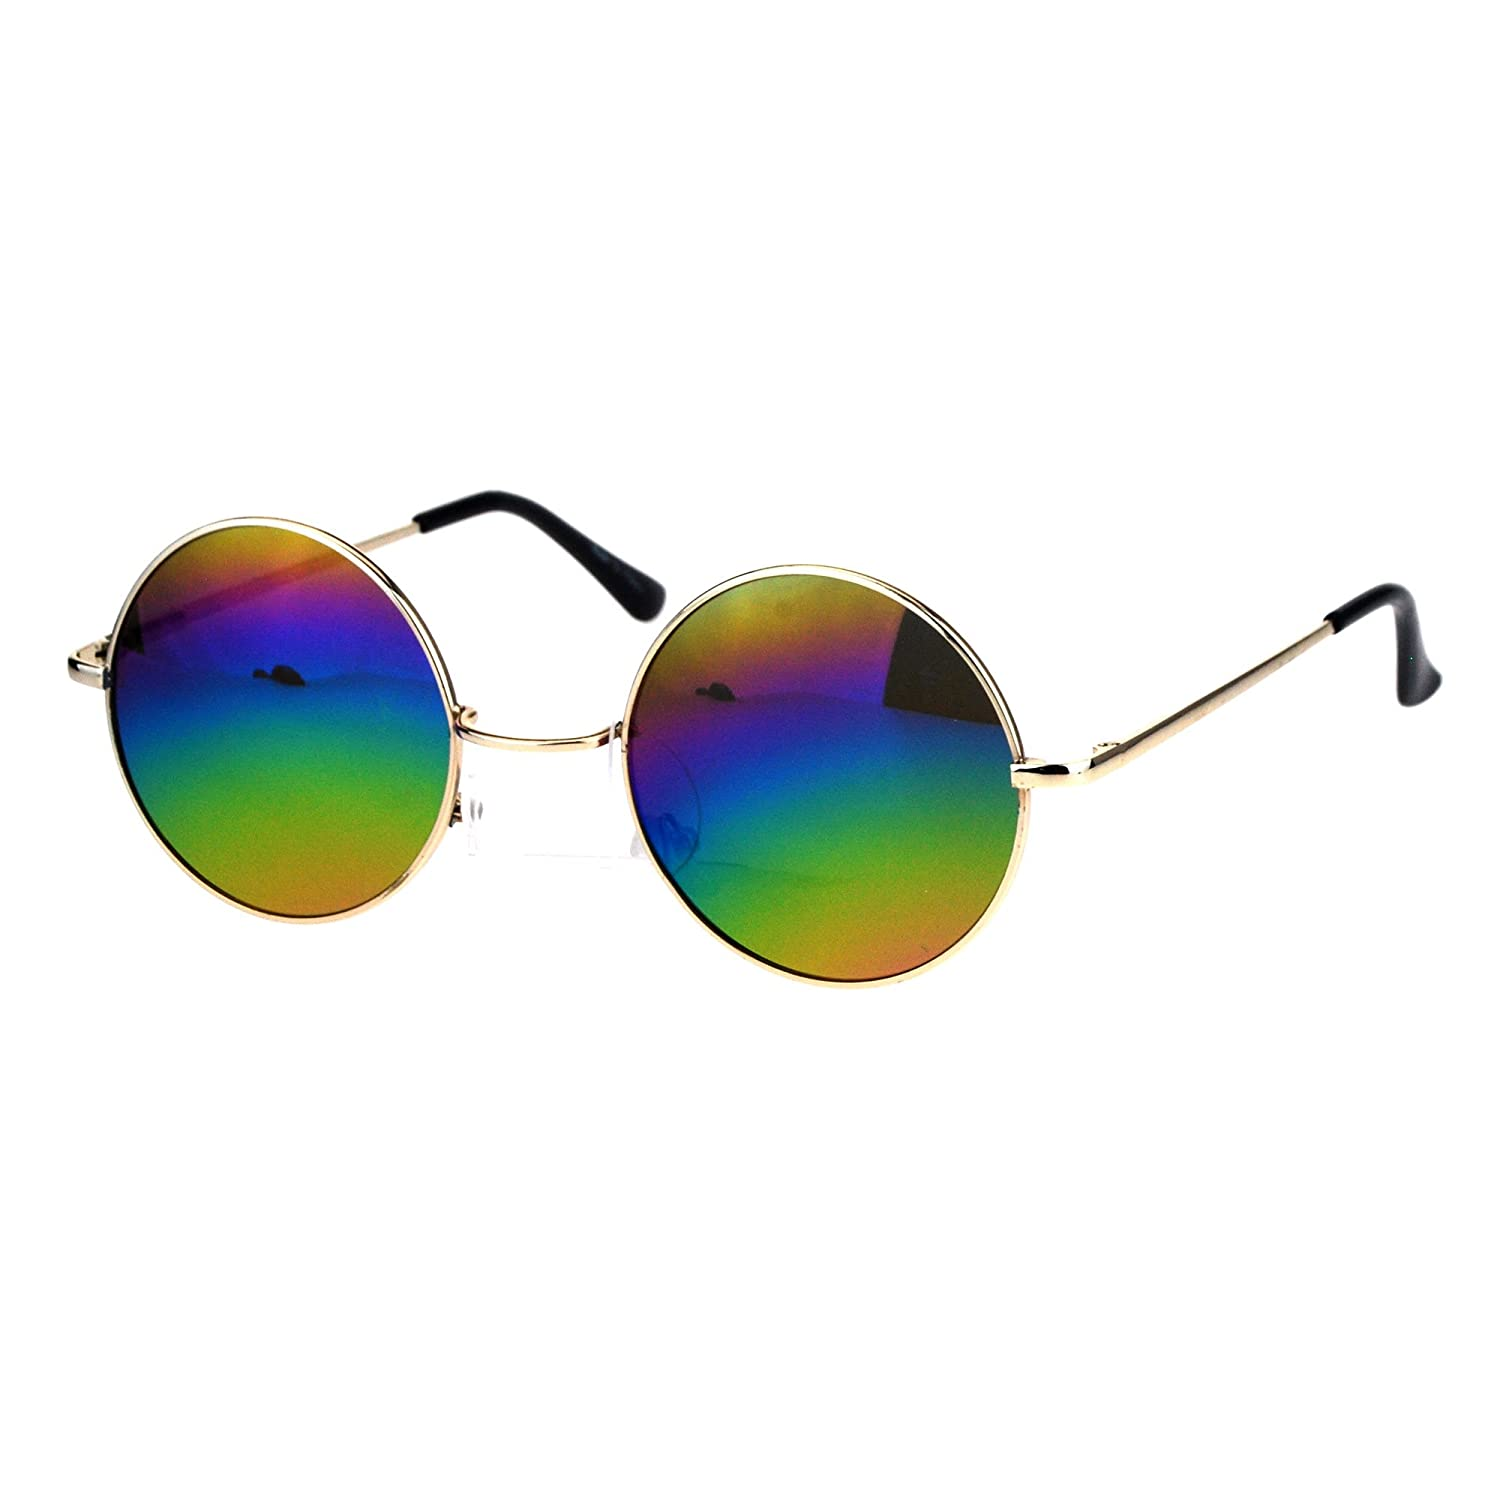 b36d79e2b65 Amazon.com  Mens Round Circled Mirrored Lens Wire Rim Musician Sunglasses  (Gold Oil Slick)  Clothing